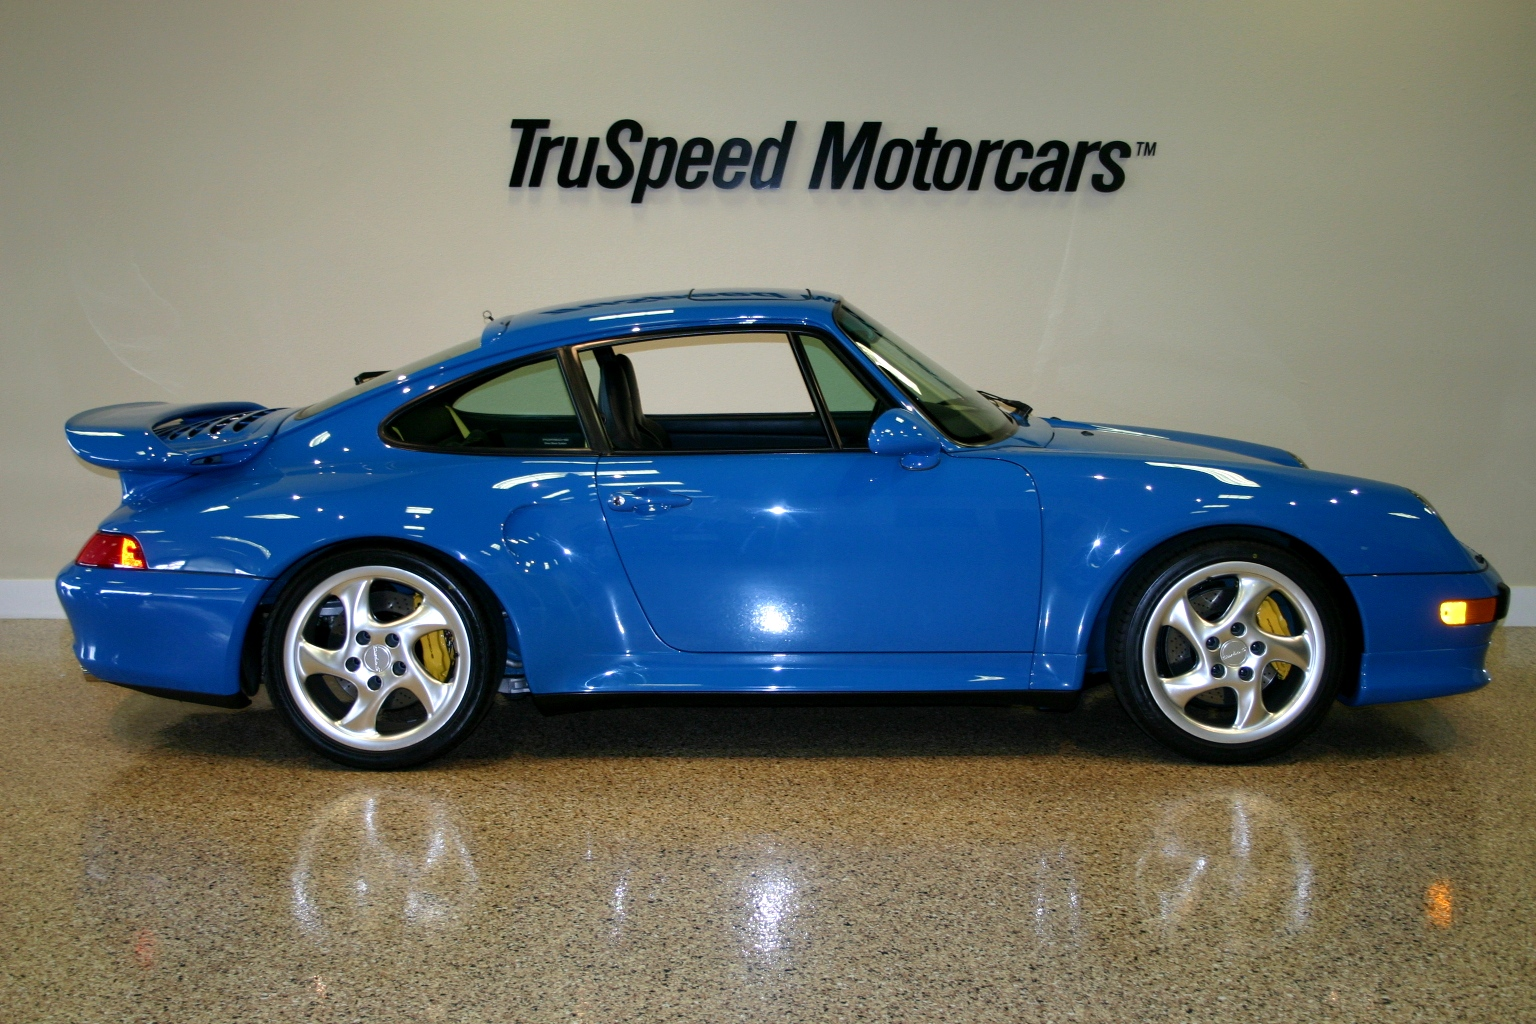 Jerry Seinfeld's Porsche 993 Turbo S